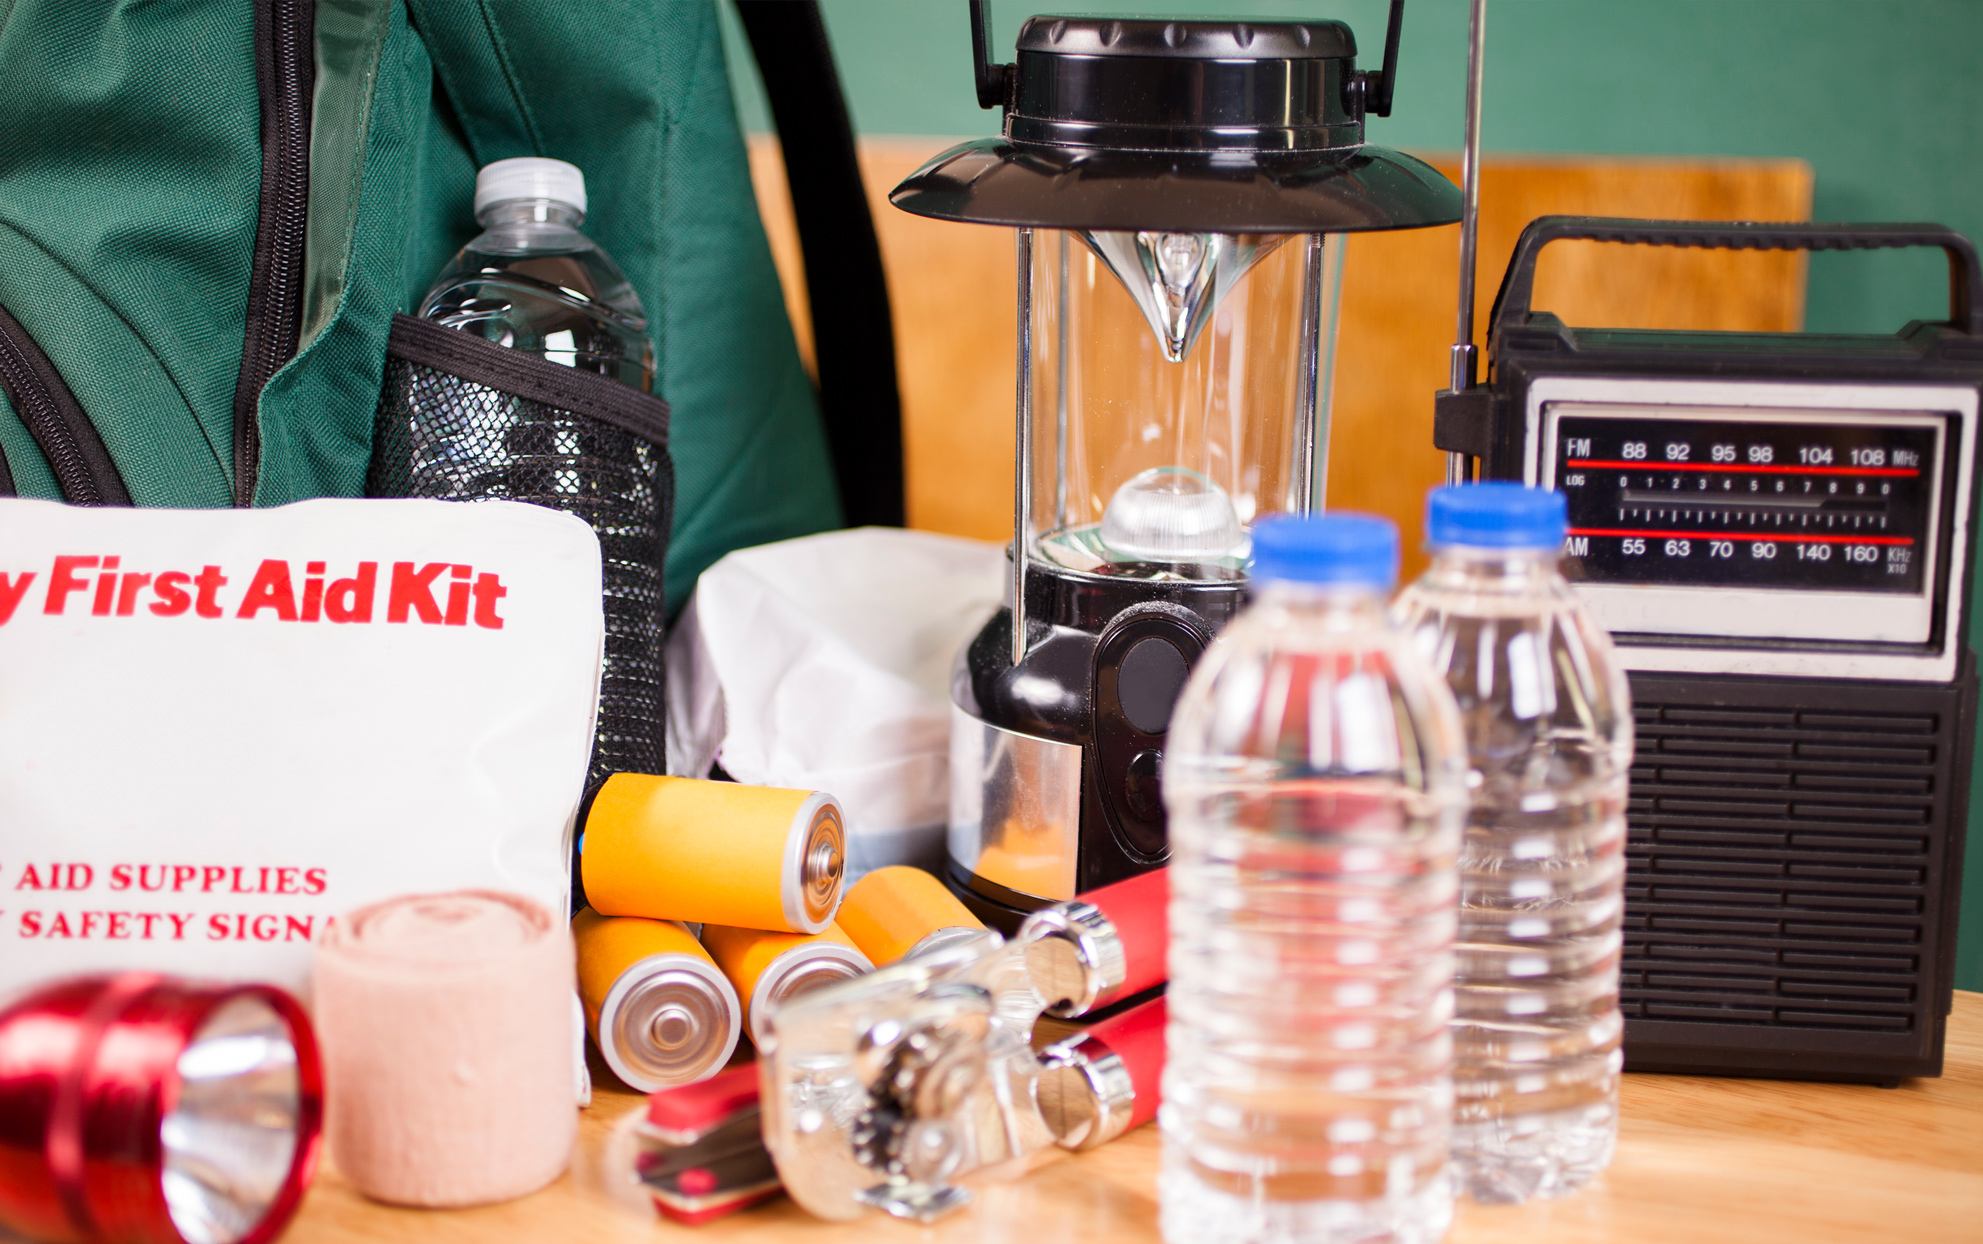 supplies for a Hurricane: bottled water, first aid kit, batteries, radio, etc.